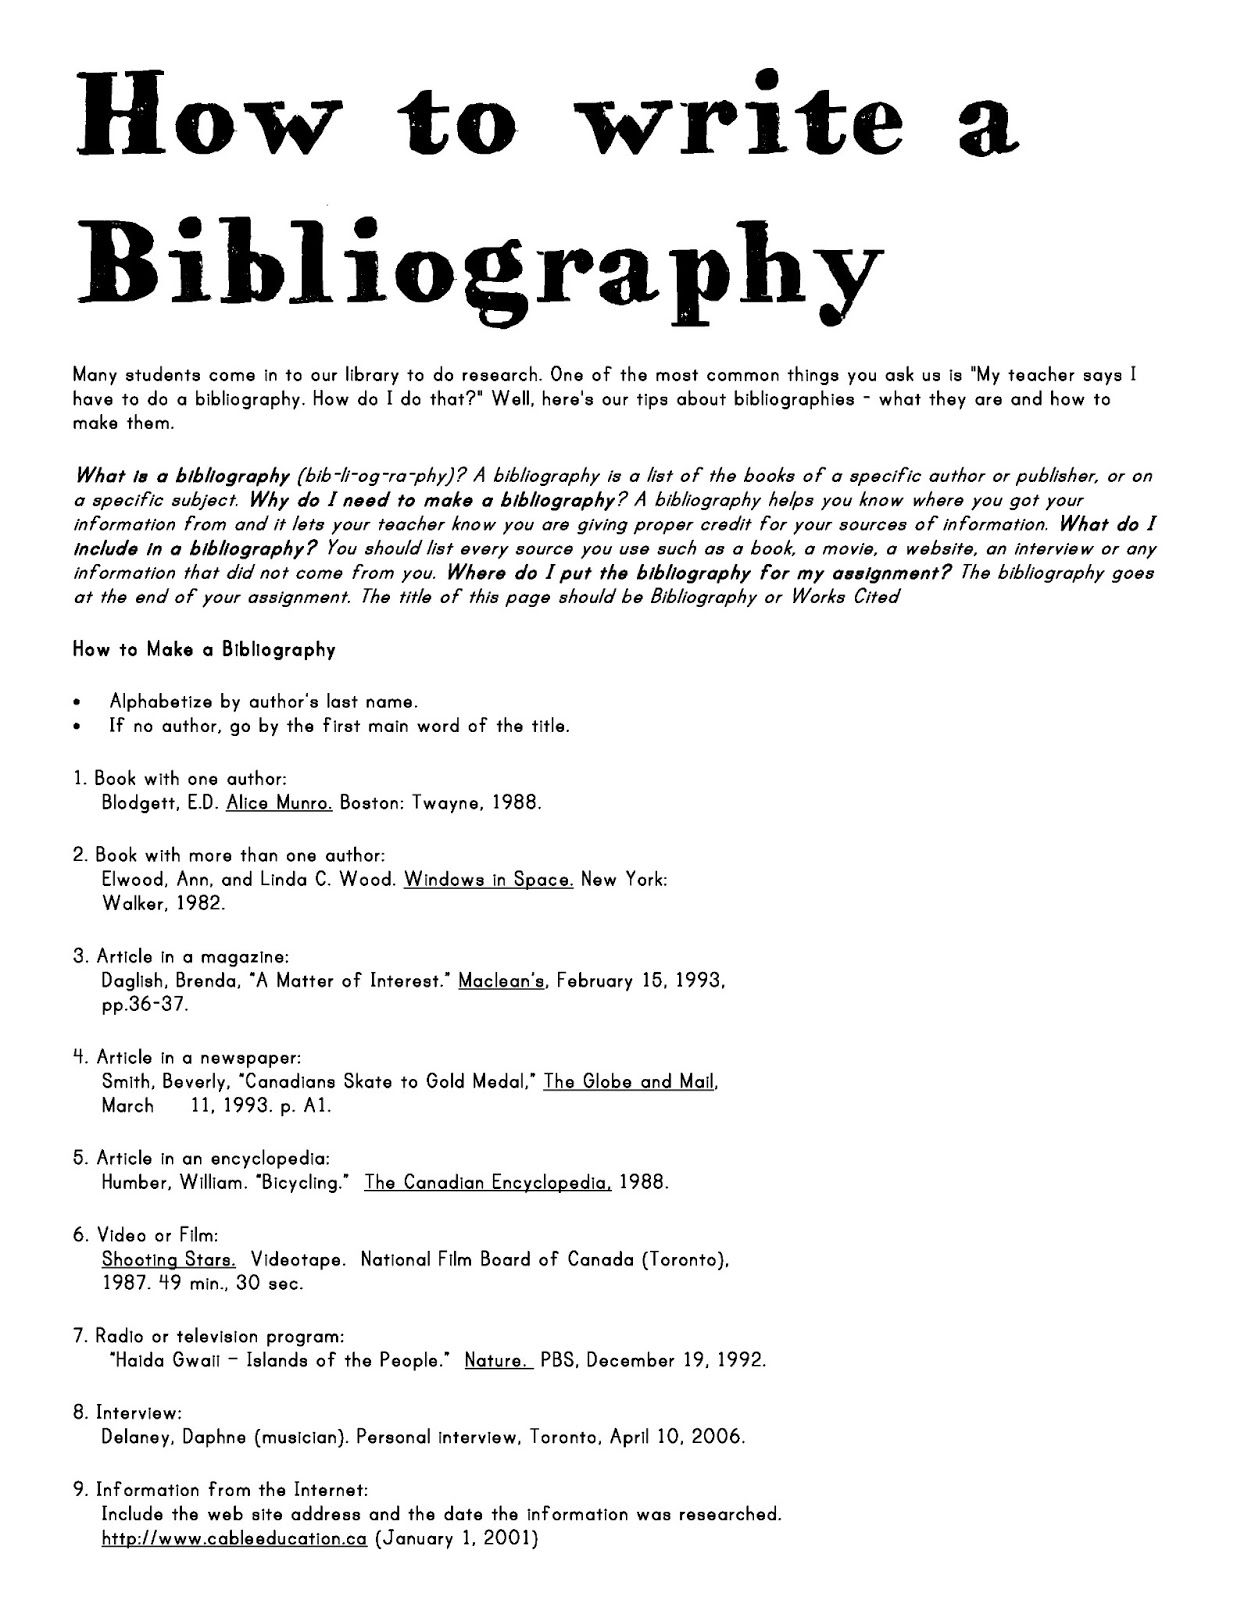 How+to+write+a+Bibliography-page-2221.JPG 221,221×221,622212221 pixels